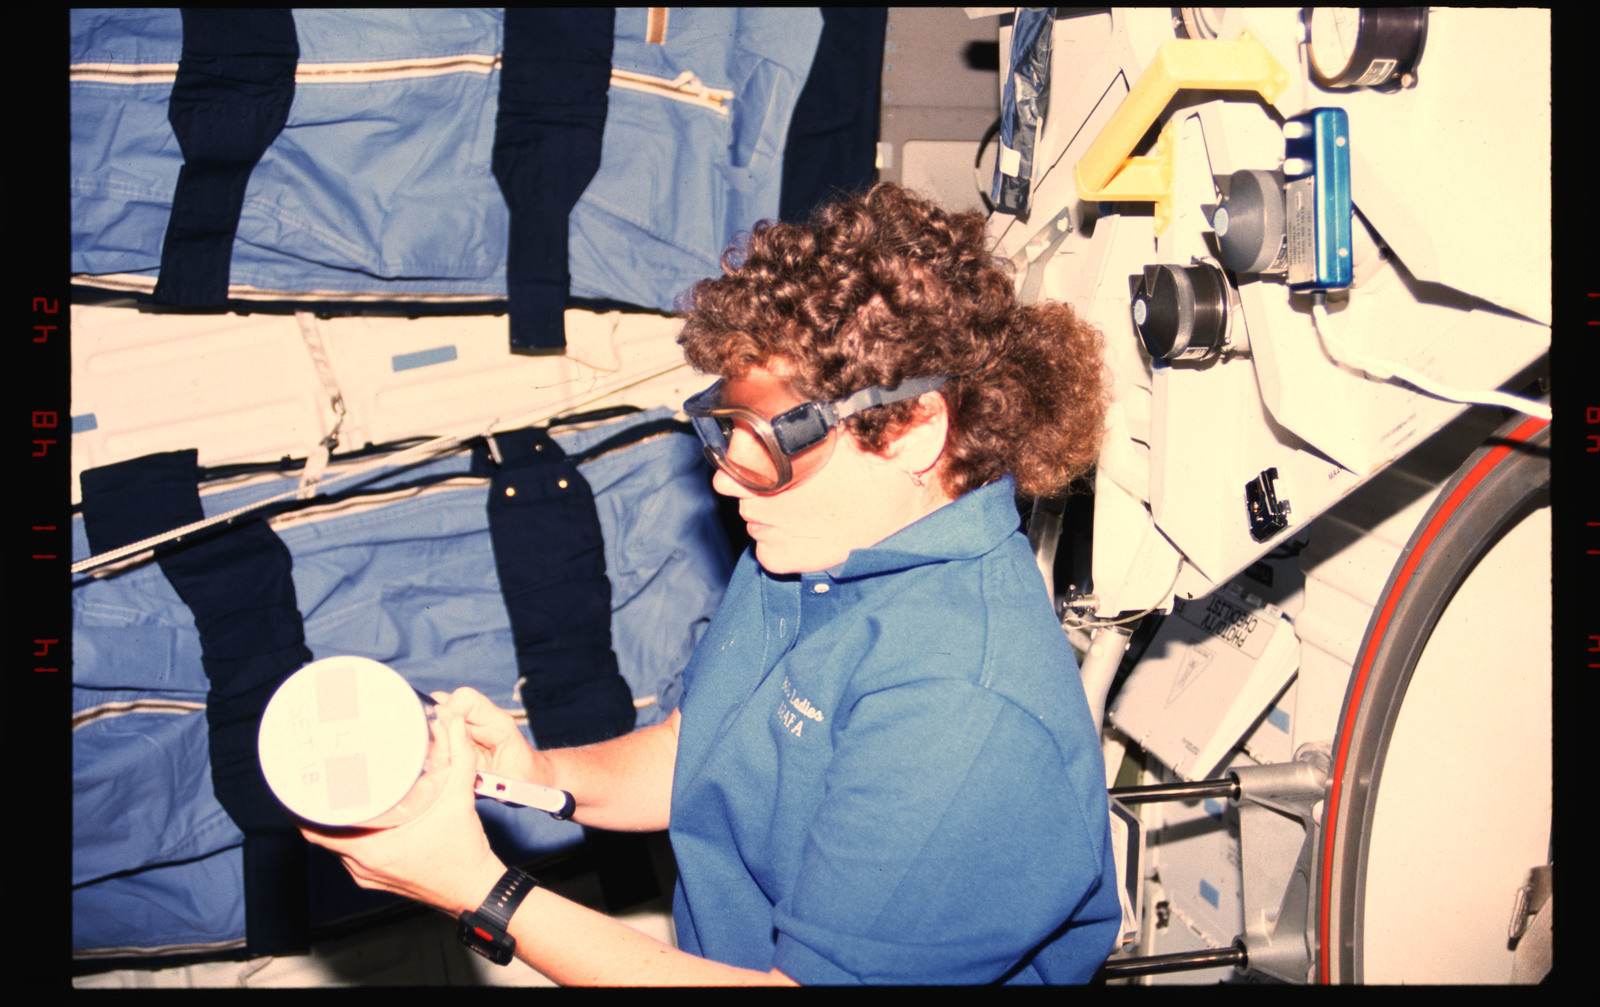 STS054-01-031 - STS-054 - Crewmember in the middeck with Commercial Generic Bioprocessing experiment.